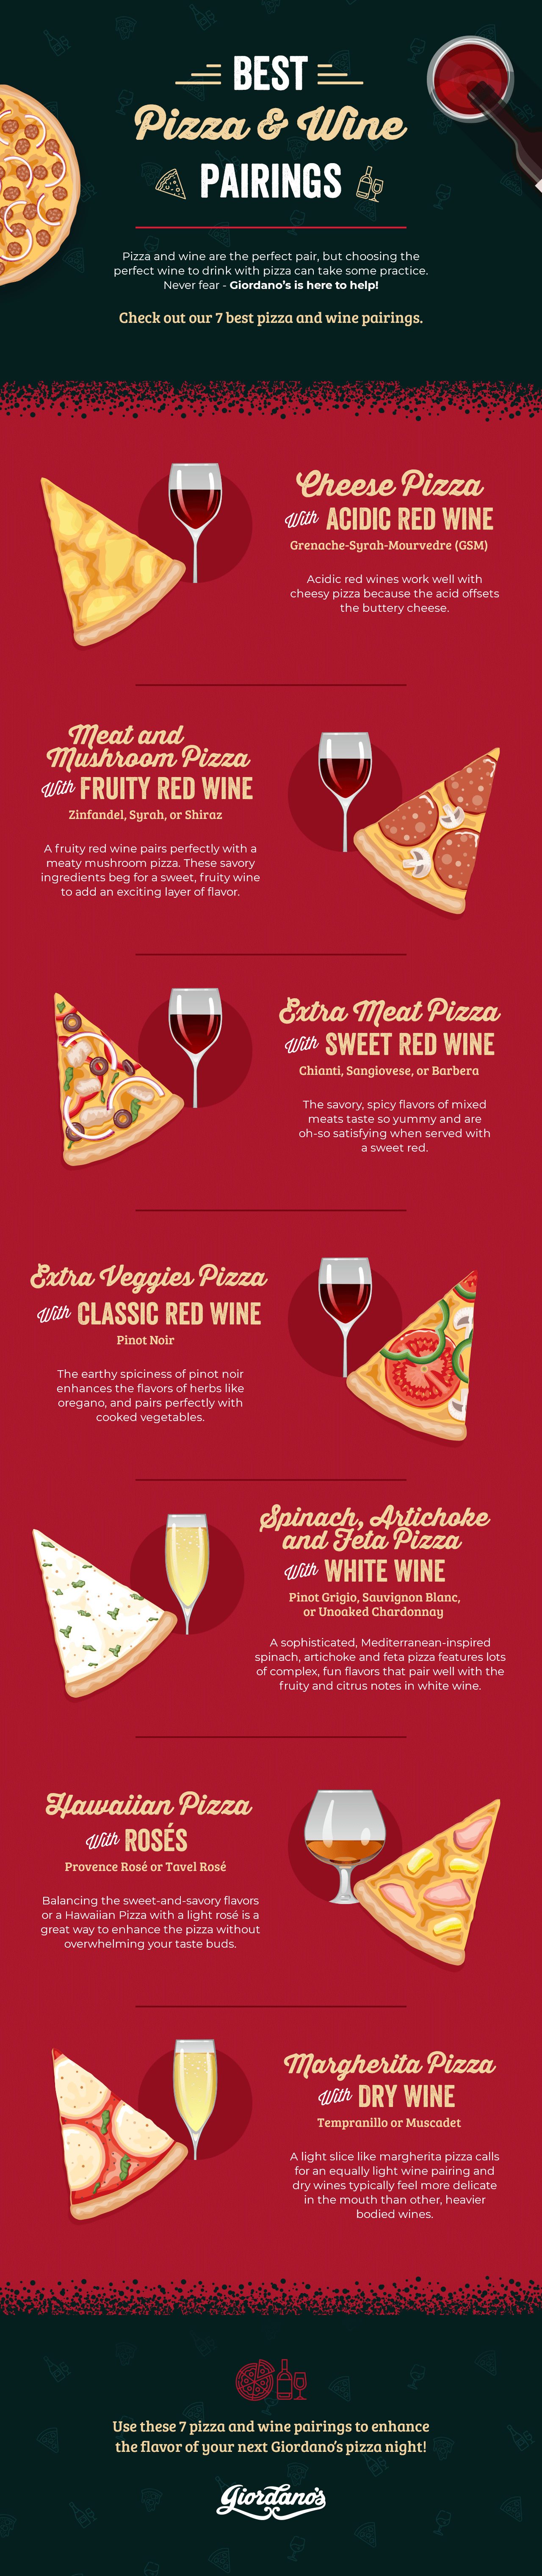 pizza and wine combos